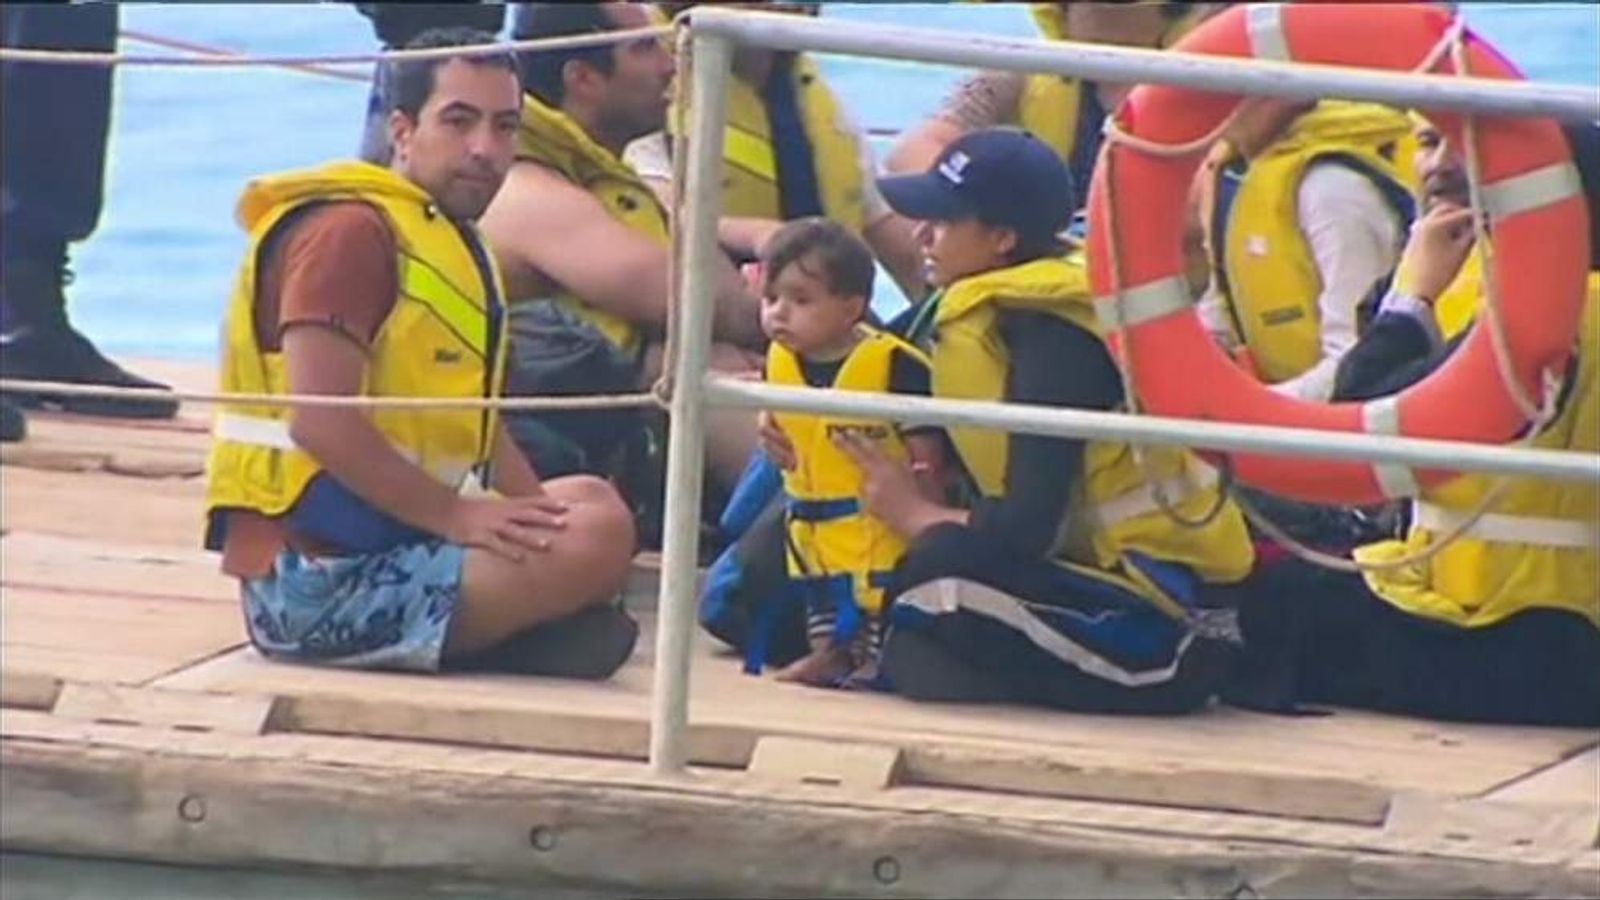 Australian Government facing tough questions over handling of young asylum seekers